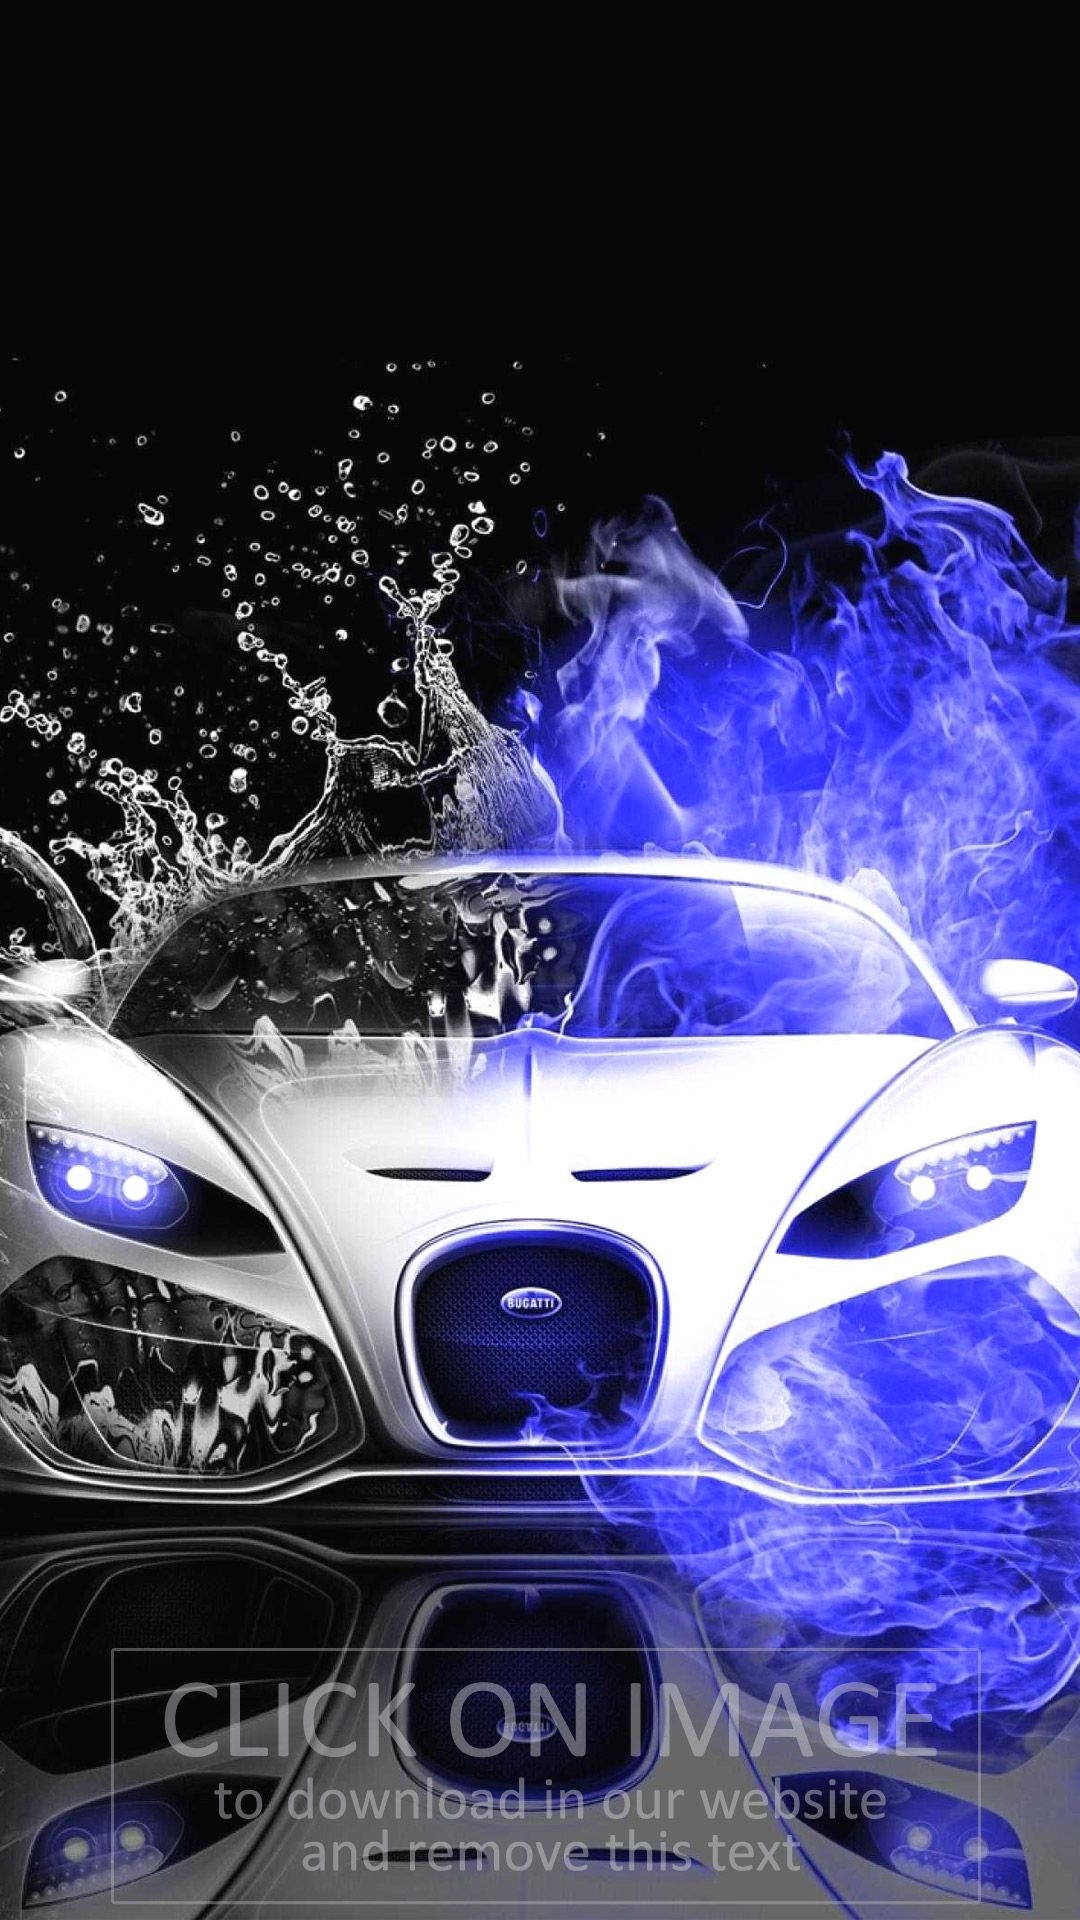 Wallpaper Car Hd High Resolution 1080 X 1920 For Iphone Mobile Android Luxury Sports Cars Mobil Keren Fotografi Desa